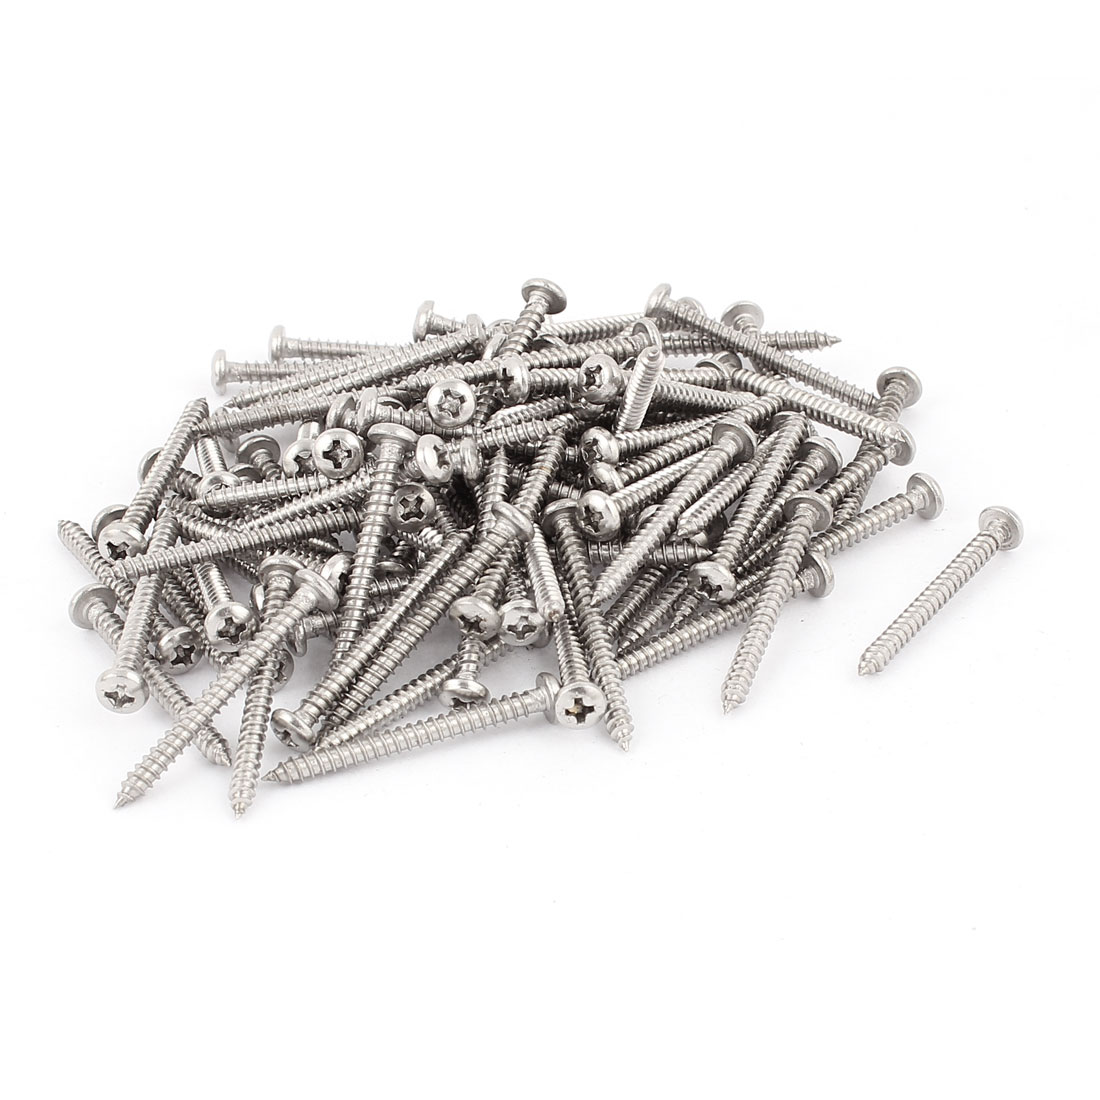 2.9mm x 32mm Pan Head Phillips Self Tapping Screw Fasteners Silver Tone 100 Pcs